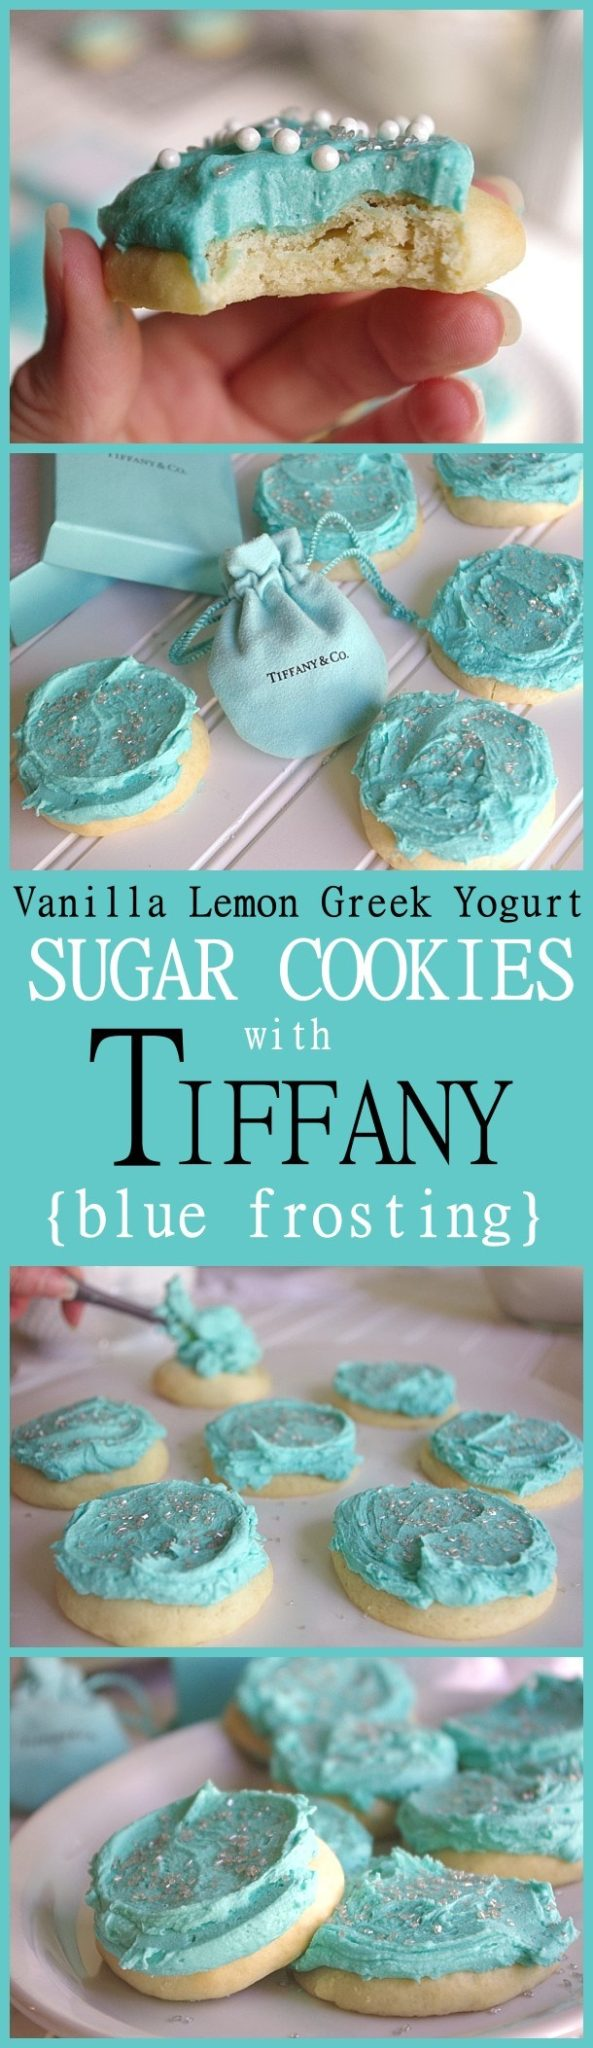 Lightly Lemon Greek Yogurt Frosted Sugar Cookies Recipe {and how to get perfectly Tiffany Blue colored FROSTING!} Fun Christmas Cookies for gift plates this holiday season! via Dreaming in DIY